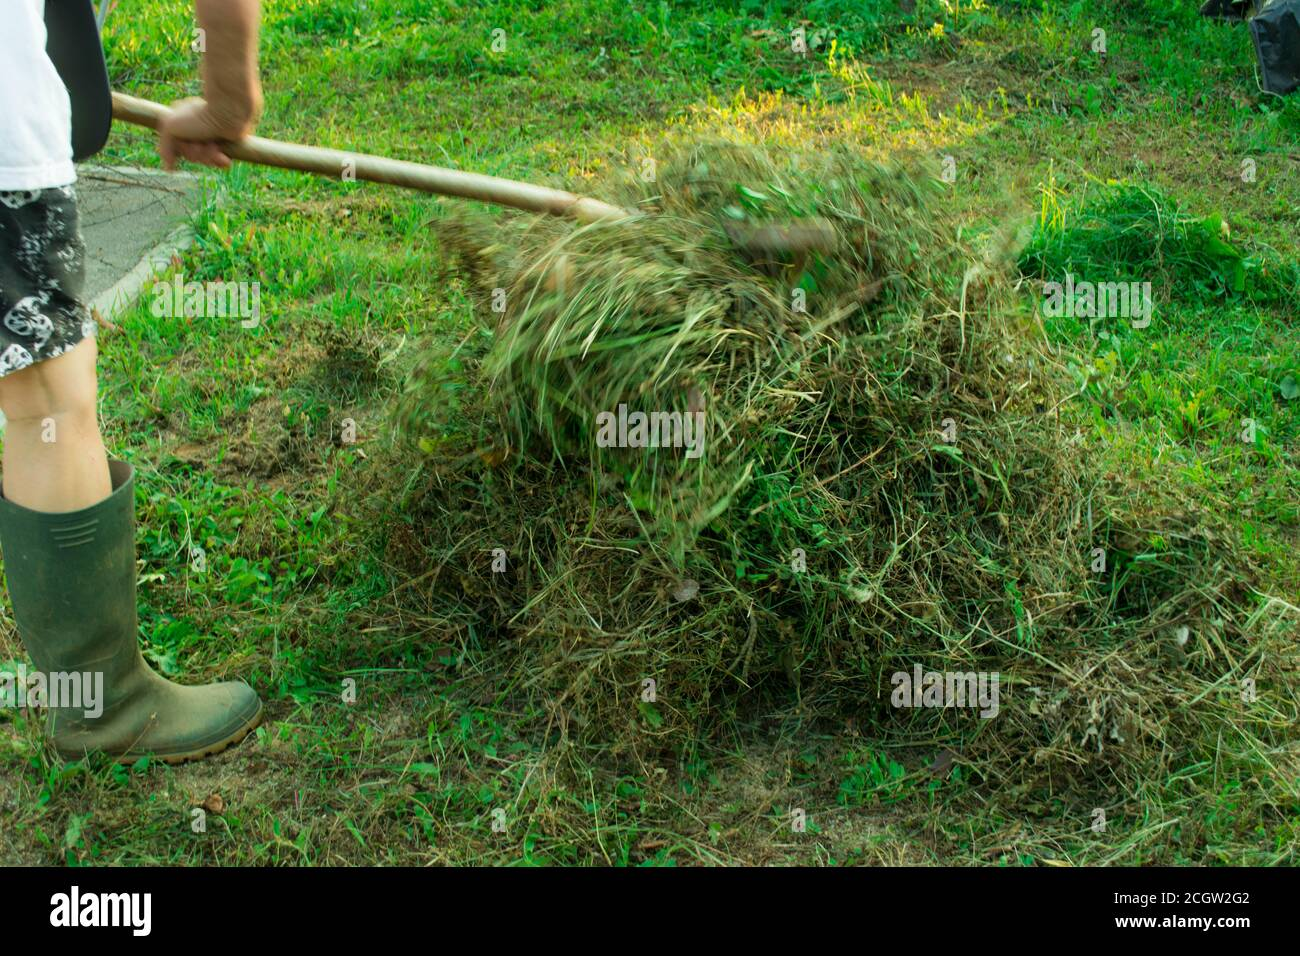 Collecting grass, cutting gras, lawn, collecting clippings Stock Photo